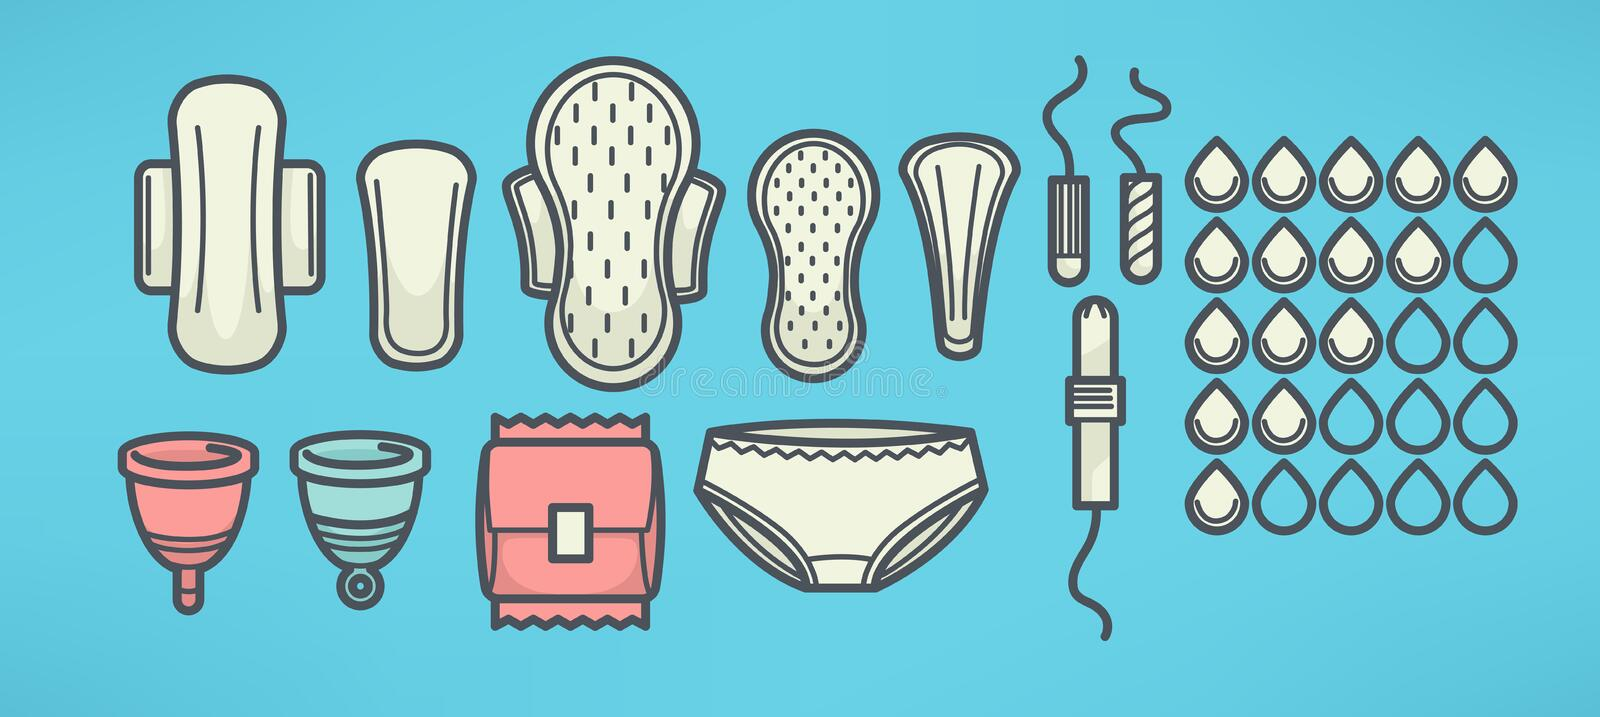 Women menstrual hygiene vector objects set, line art style. Women menstrual hygiene vector objects set stock illustration